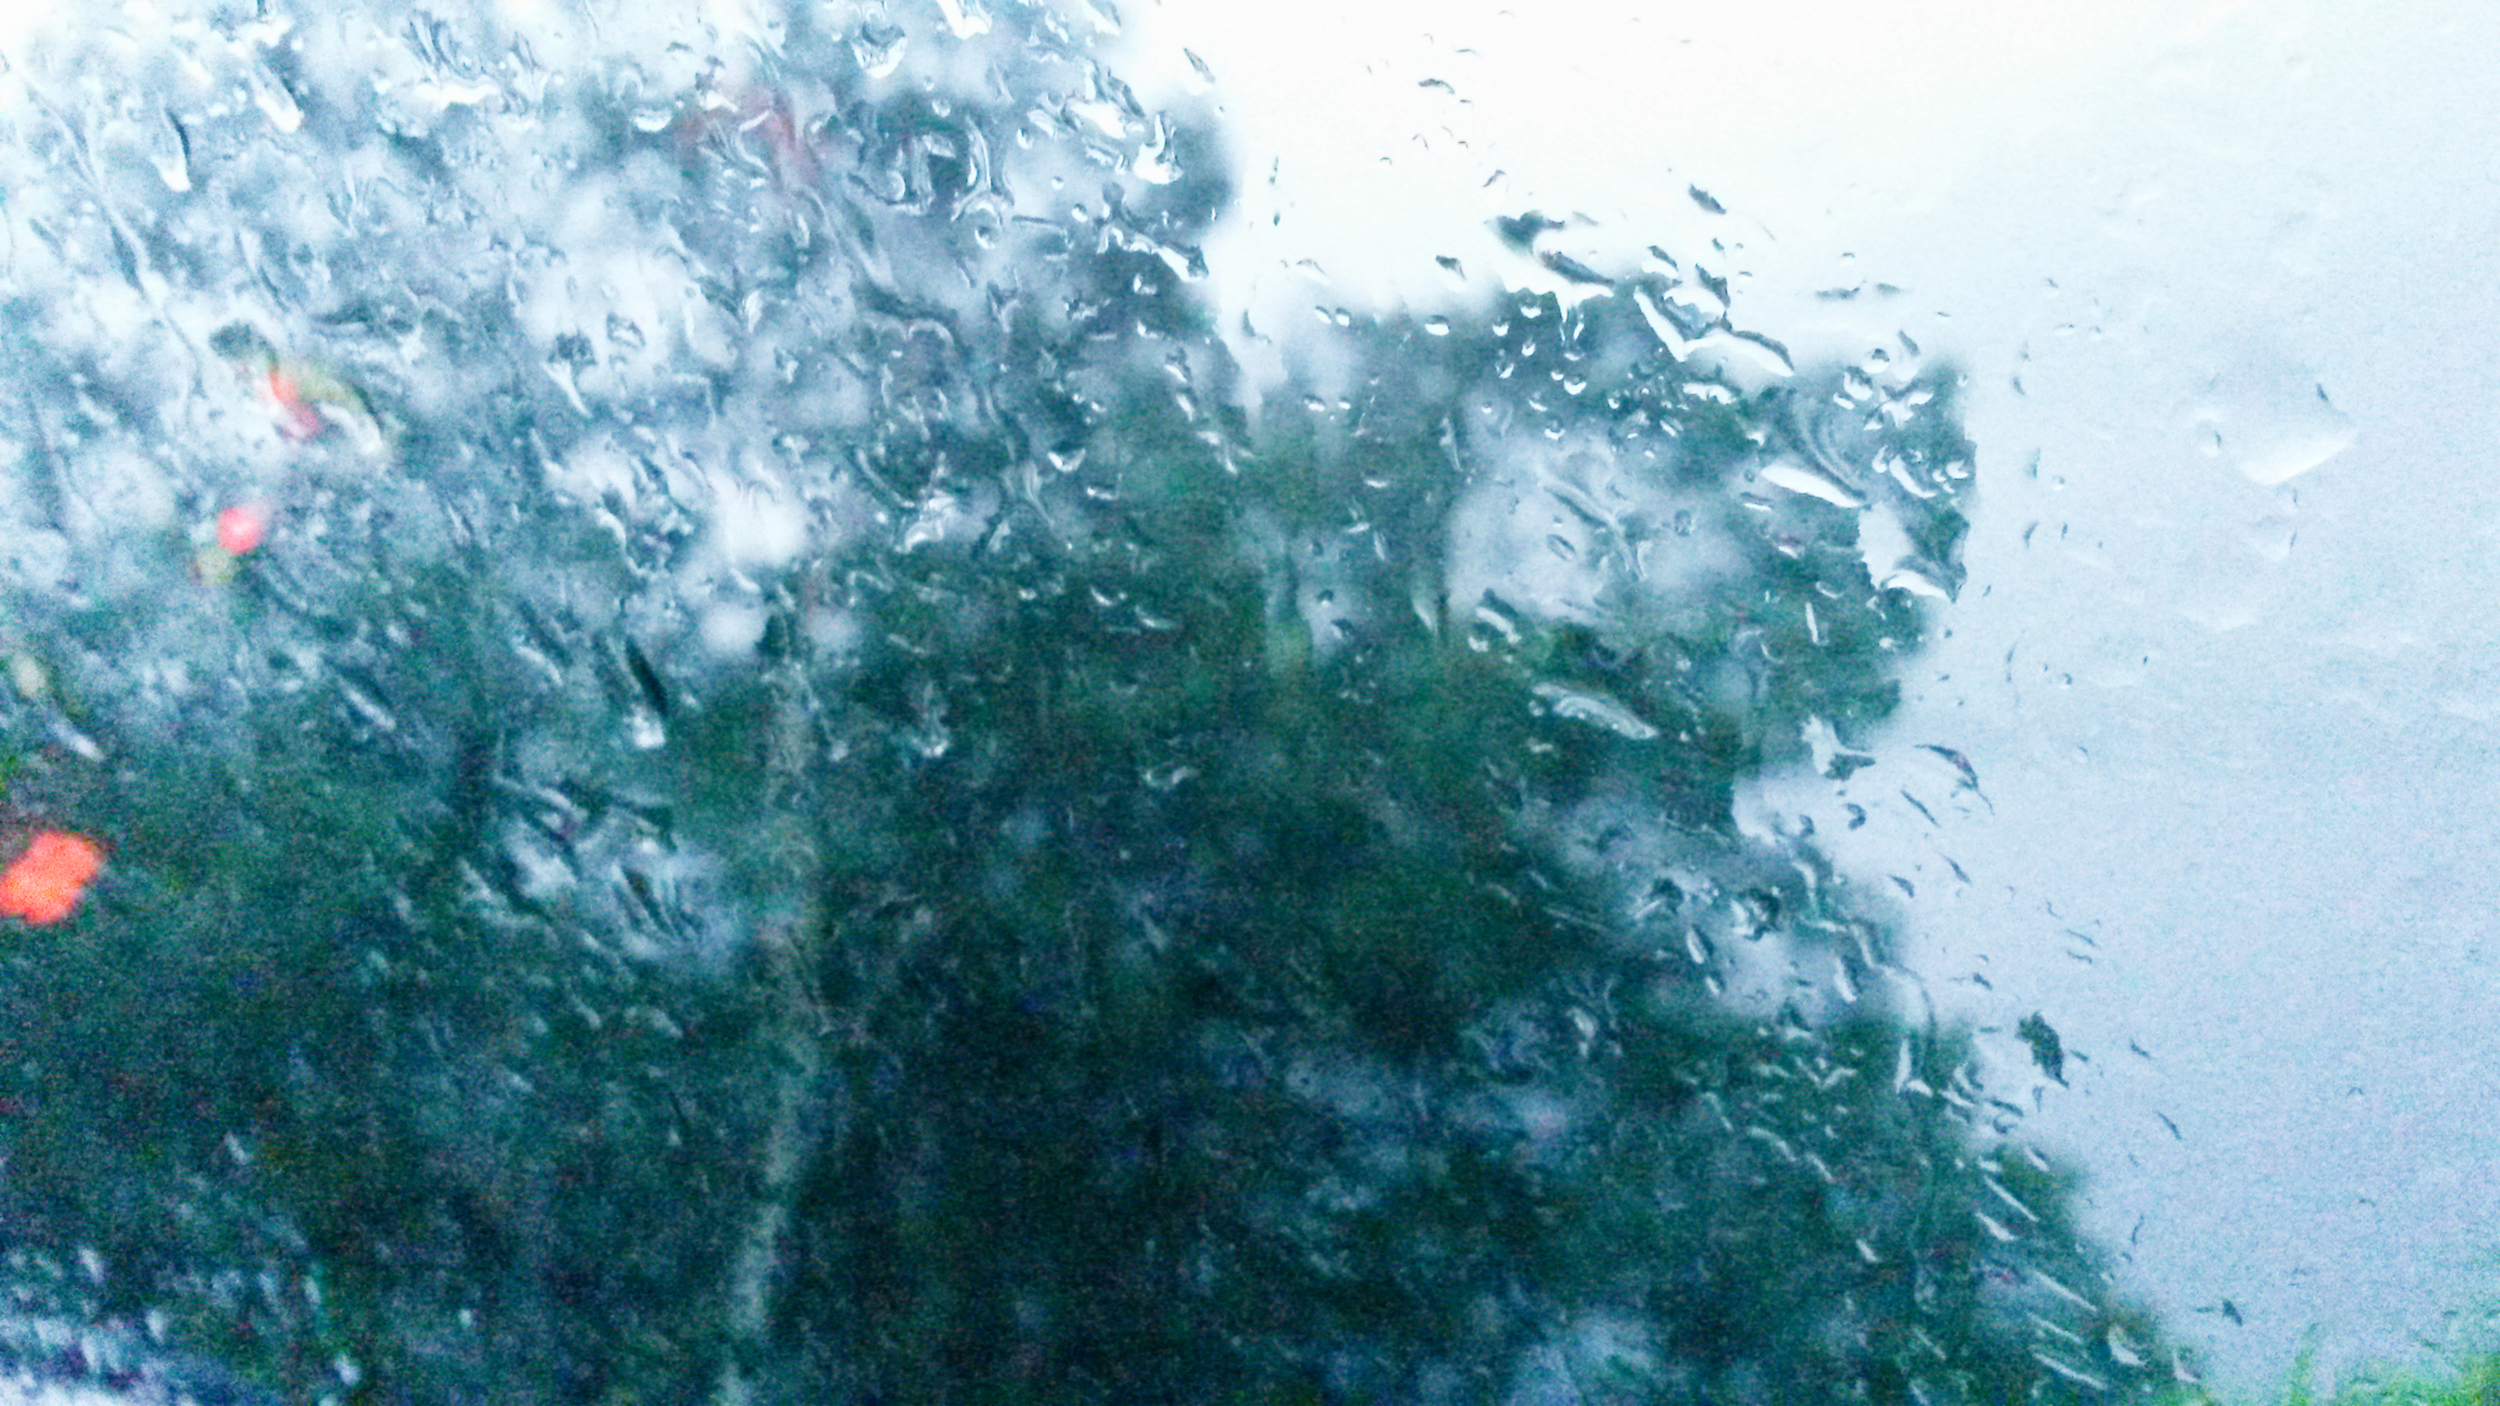 Rain on the car window at Buttermere